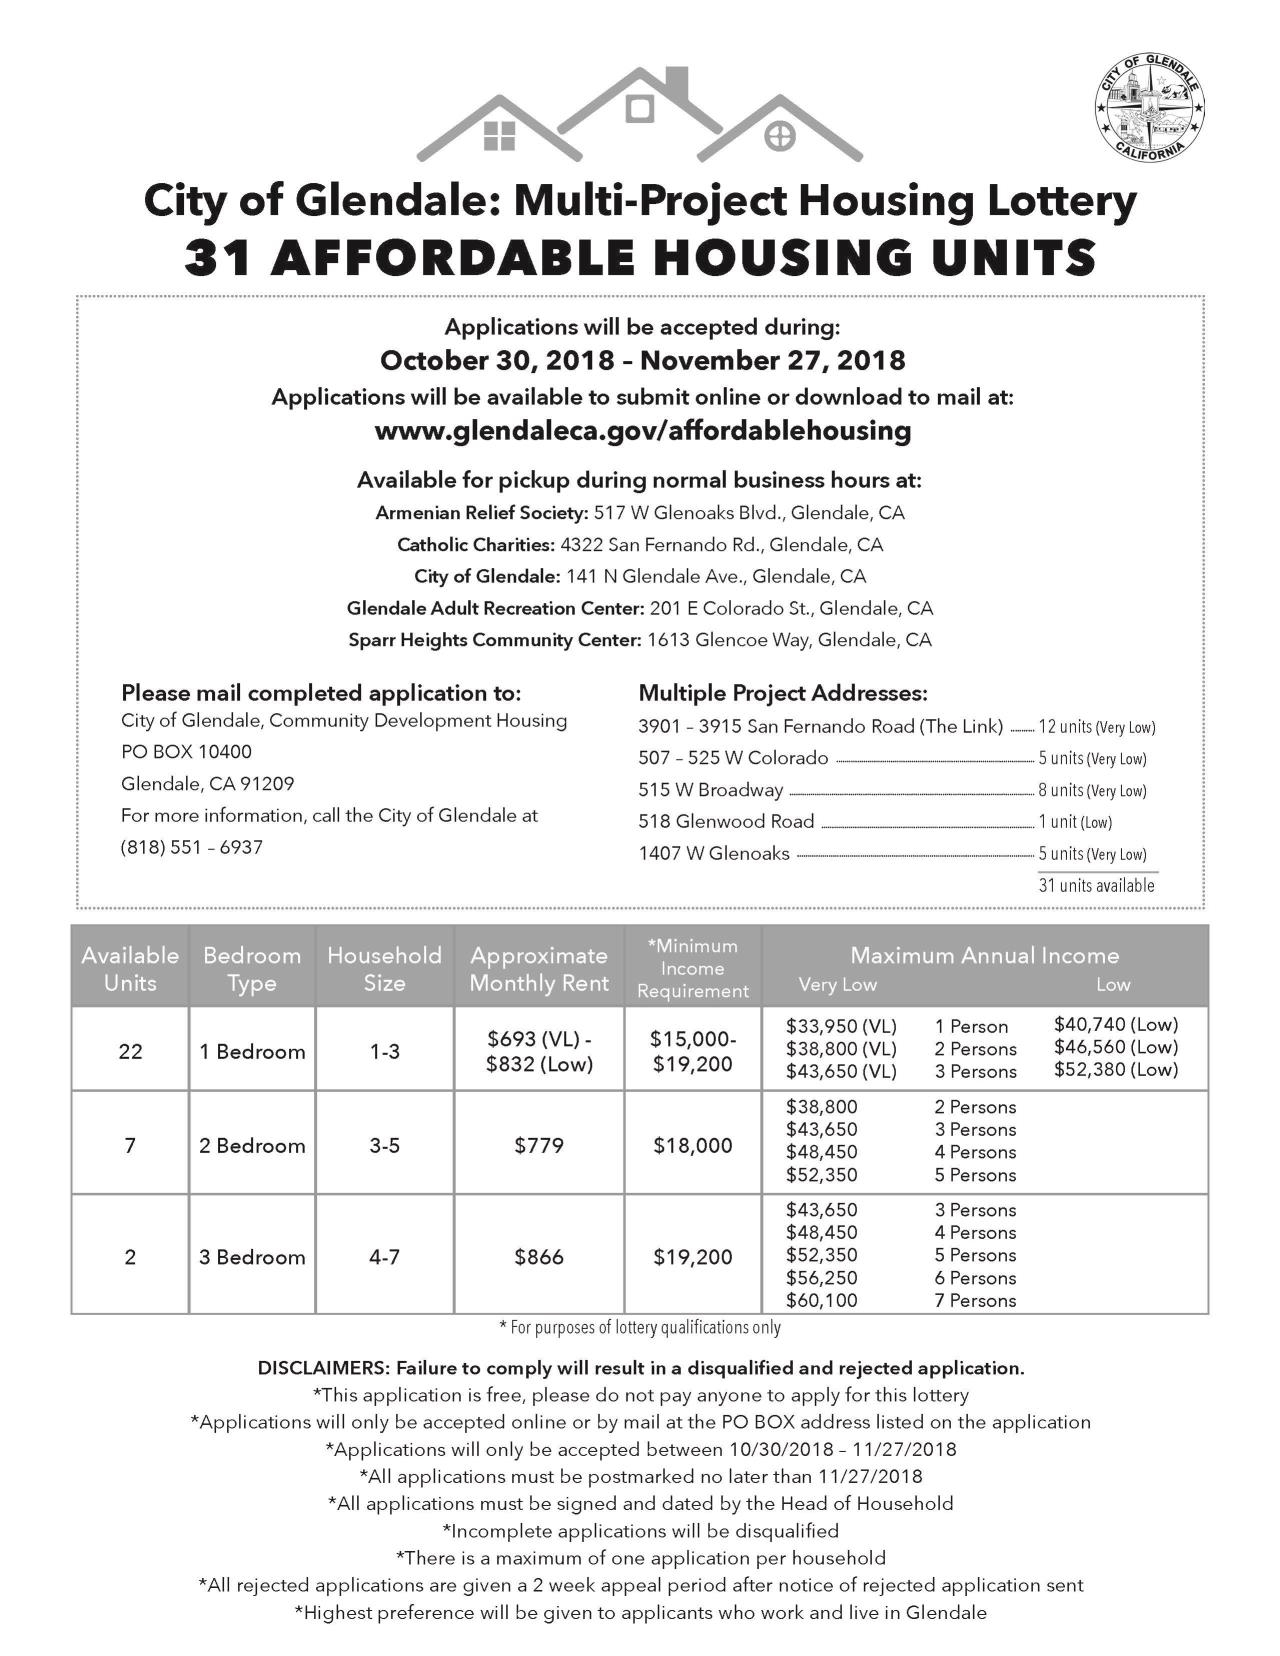 AffordableHousing_flyer2018